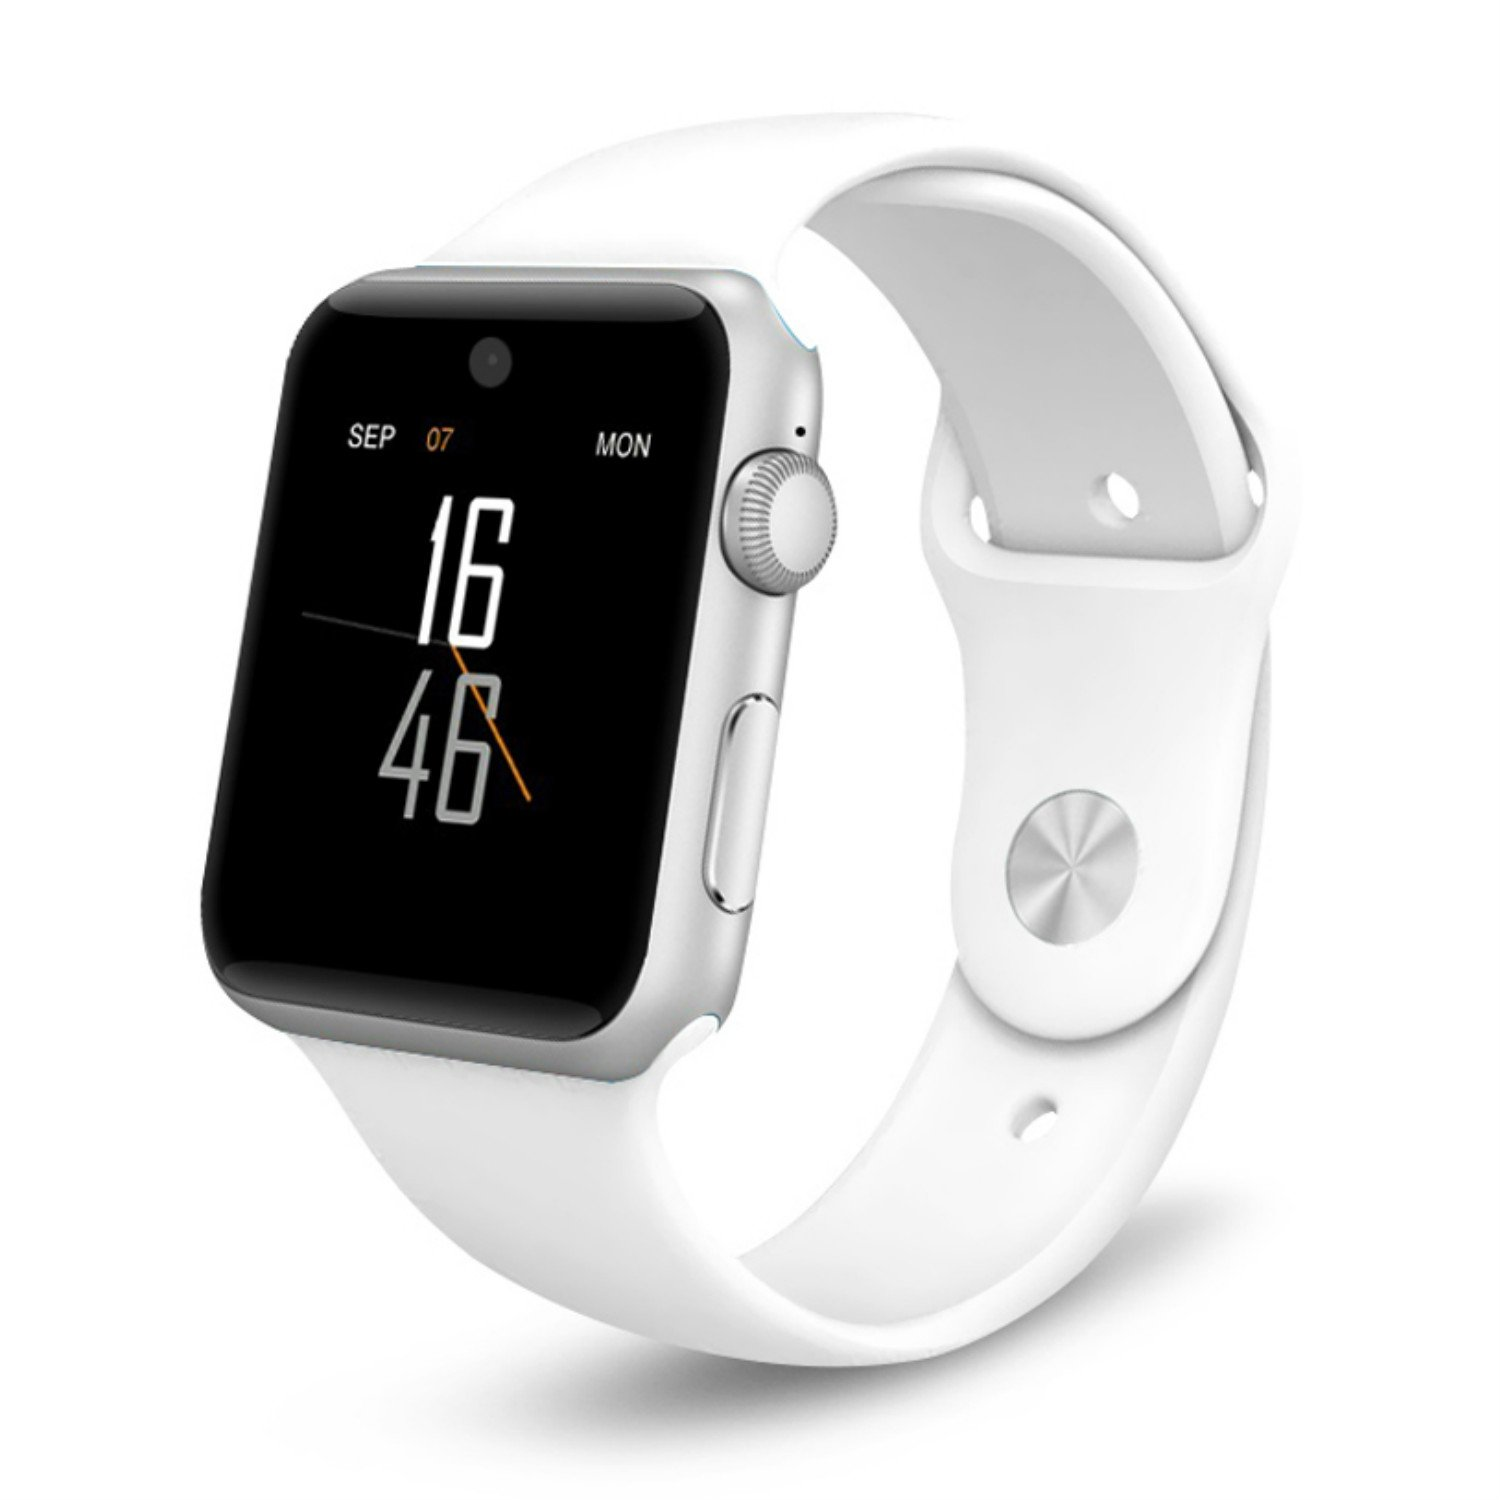 Smart Watch Bluetooth Smartwatch Touch Screen BT4.0 Support SIM Card with HD Camera Health Monitor Call Alert Messages Sync Sport Tracker Watch Compatible with Apple iPhone iOS Android Samsung (White)